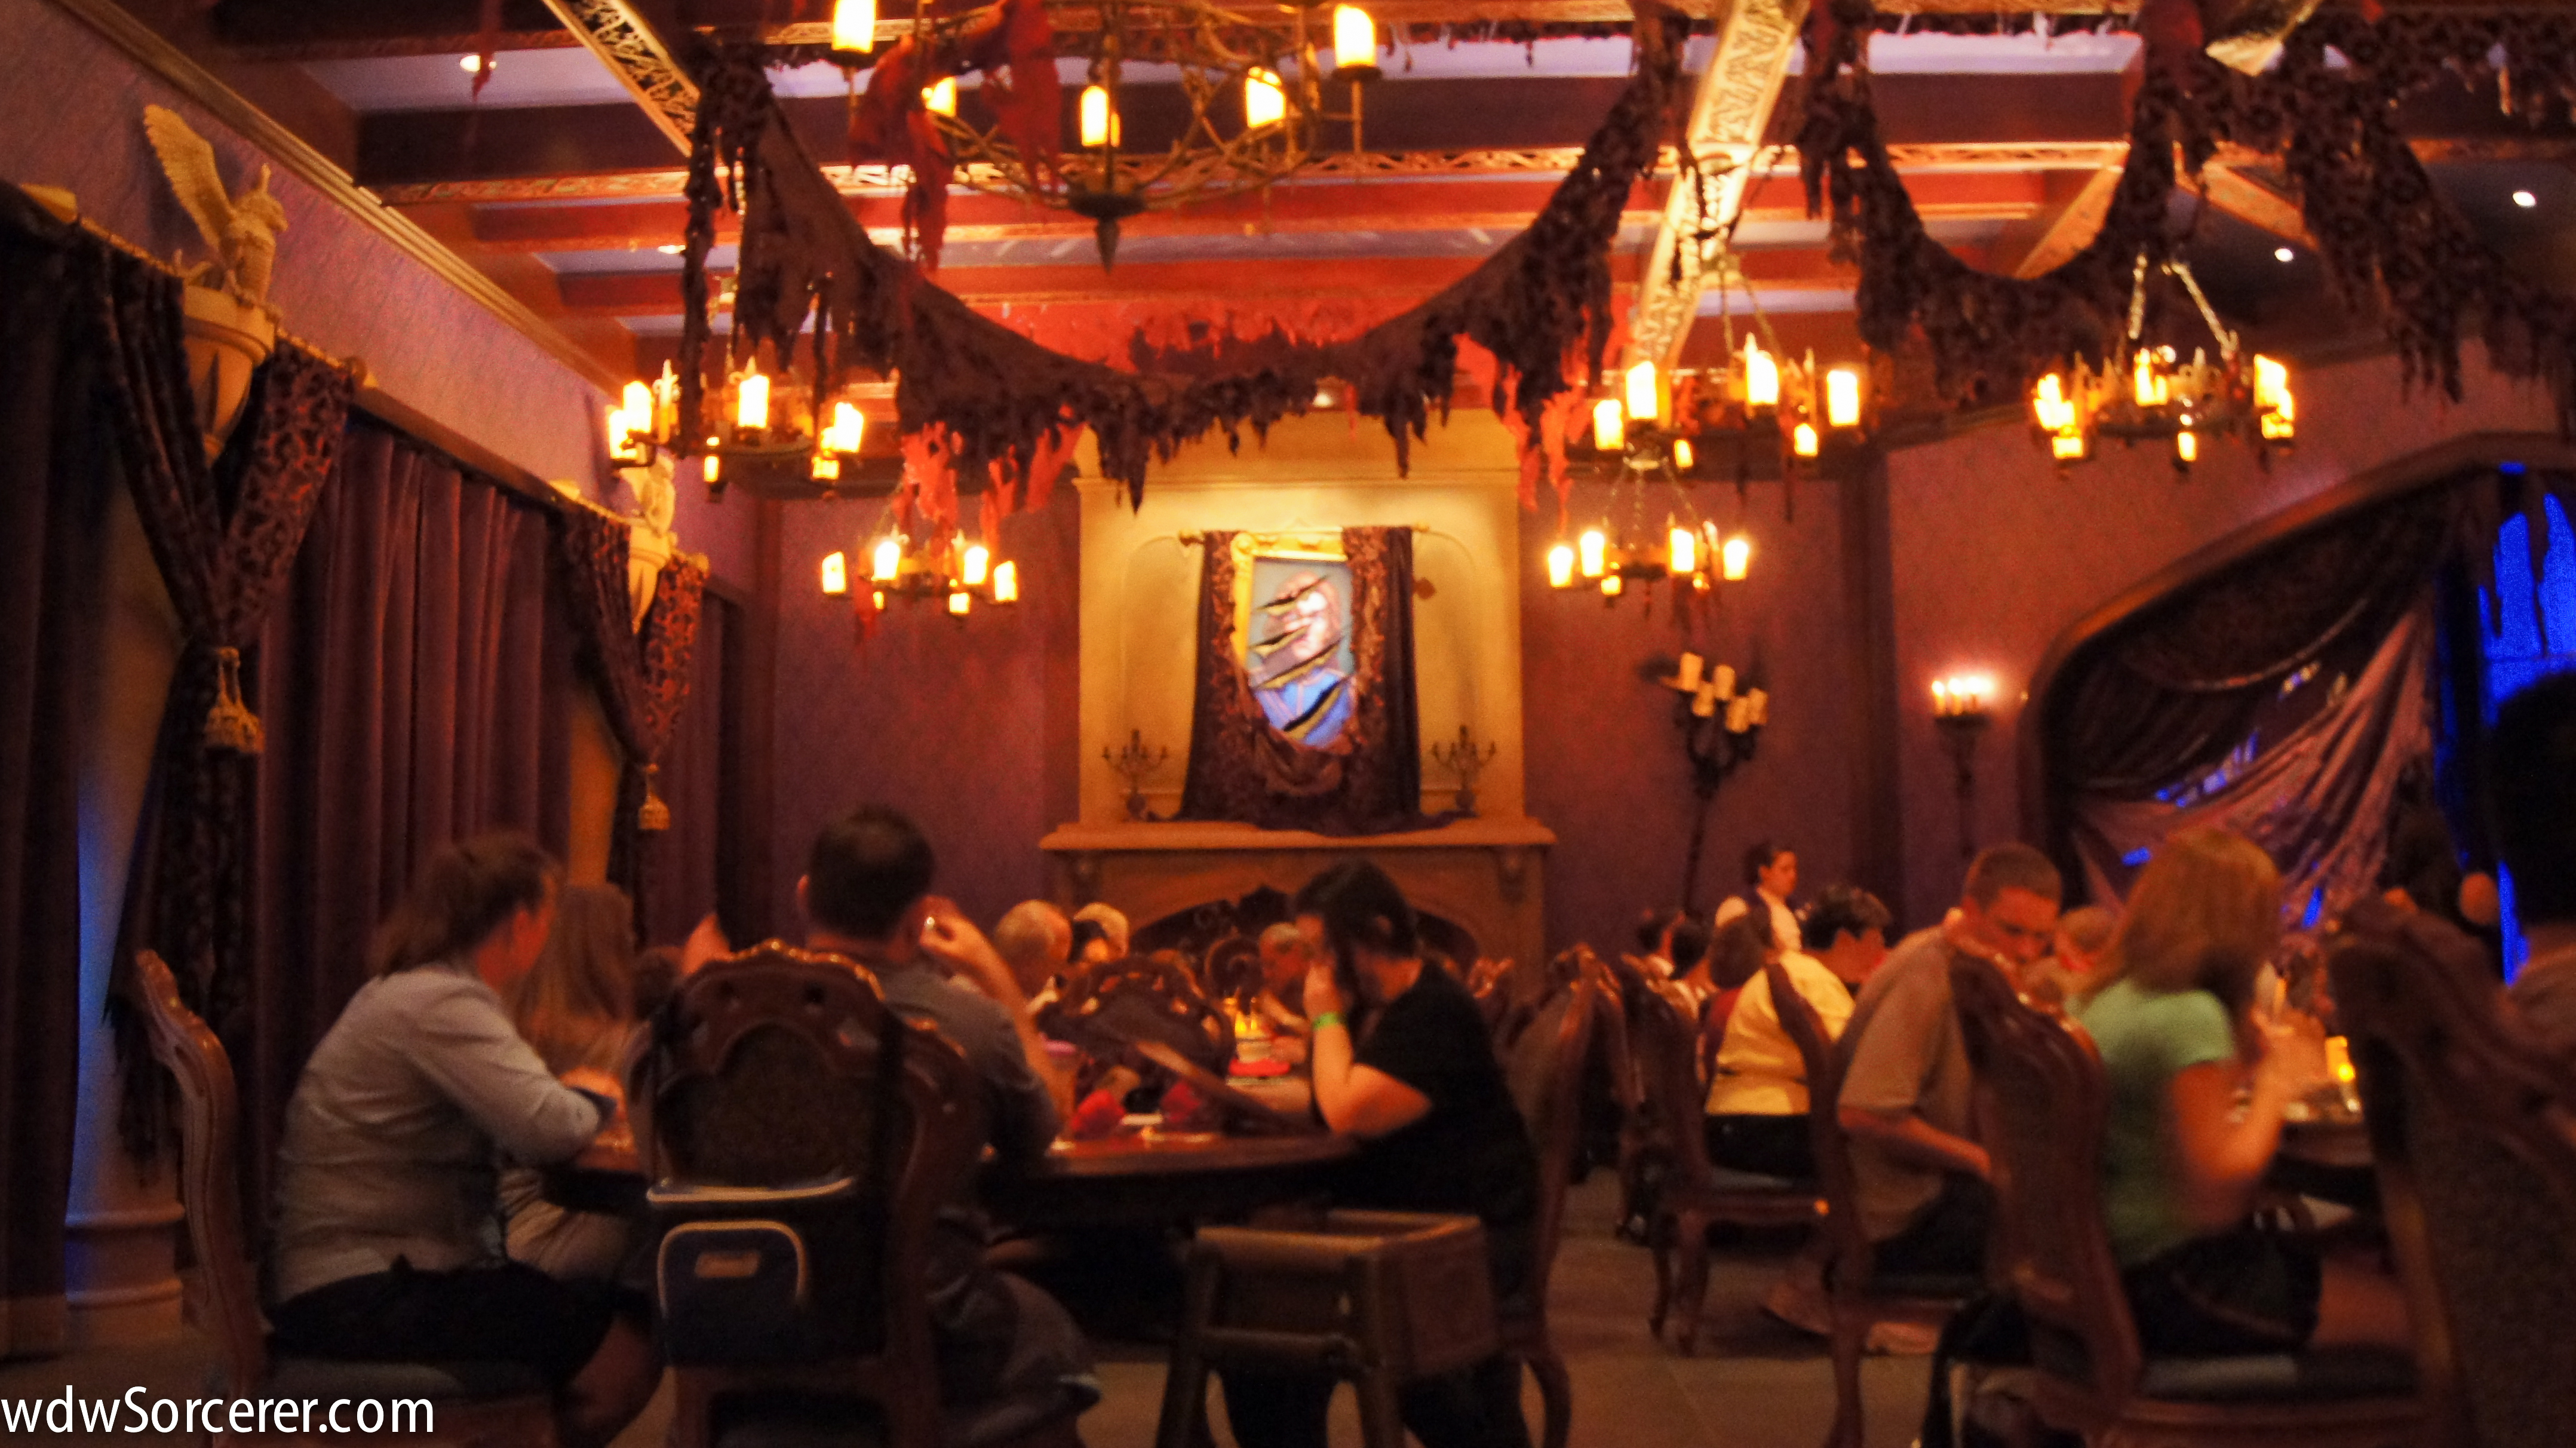 review: be our guest restaurant for lunch and dinner at the magic